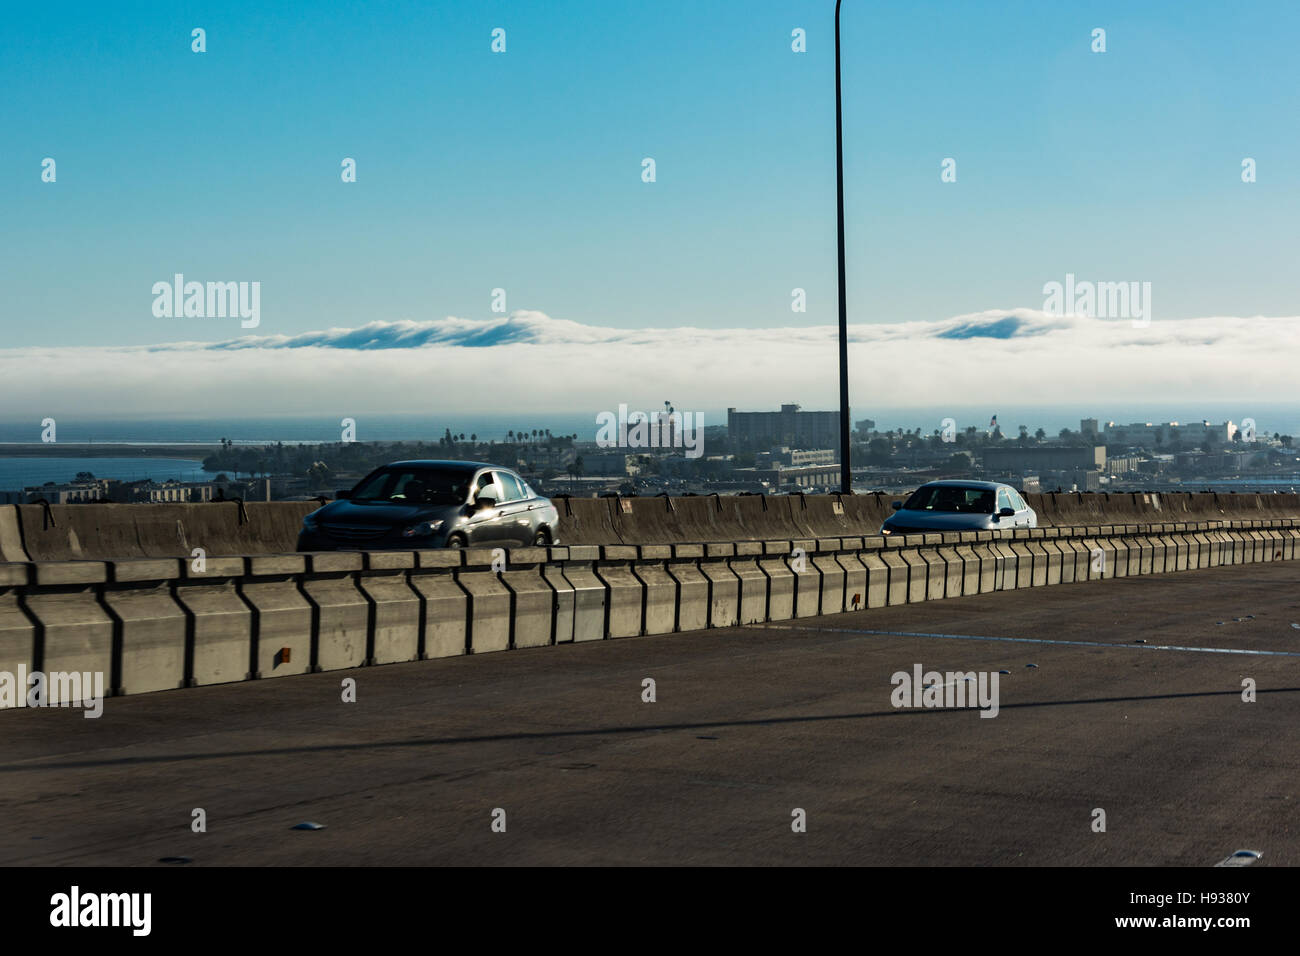 A cloud layer right on top of the City of Coronado,California - Stock Image